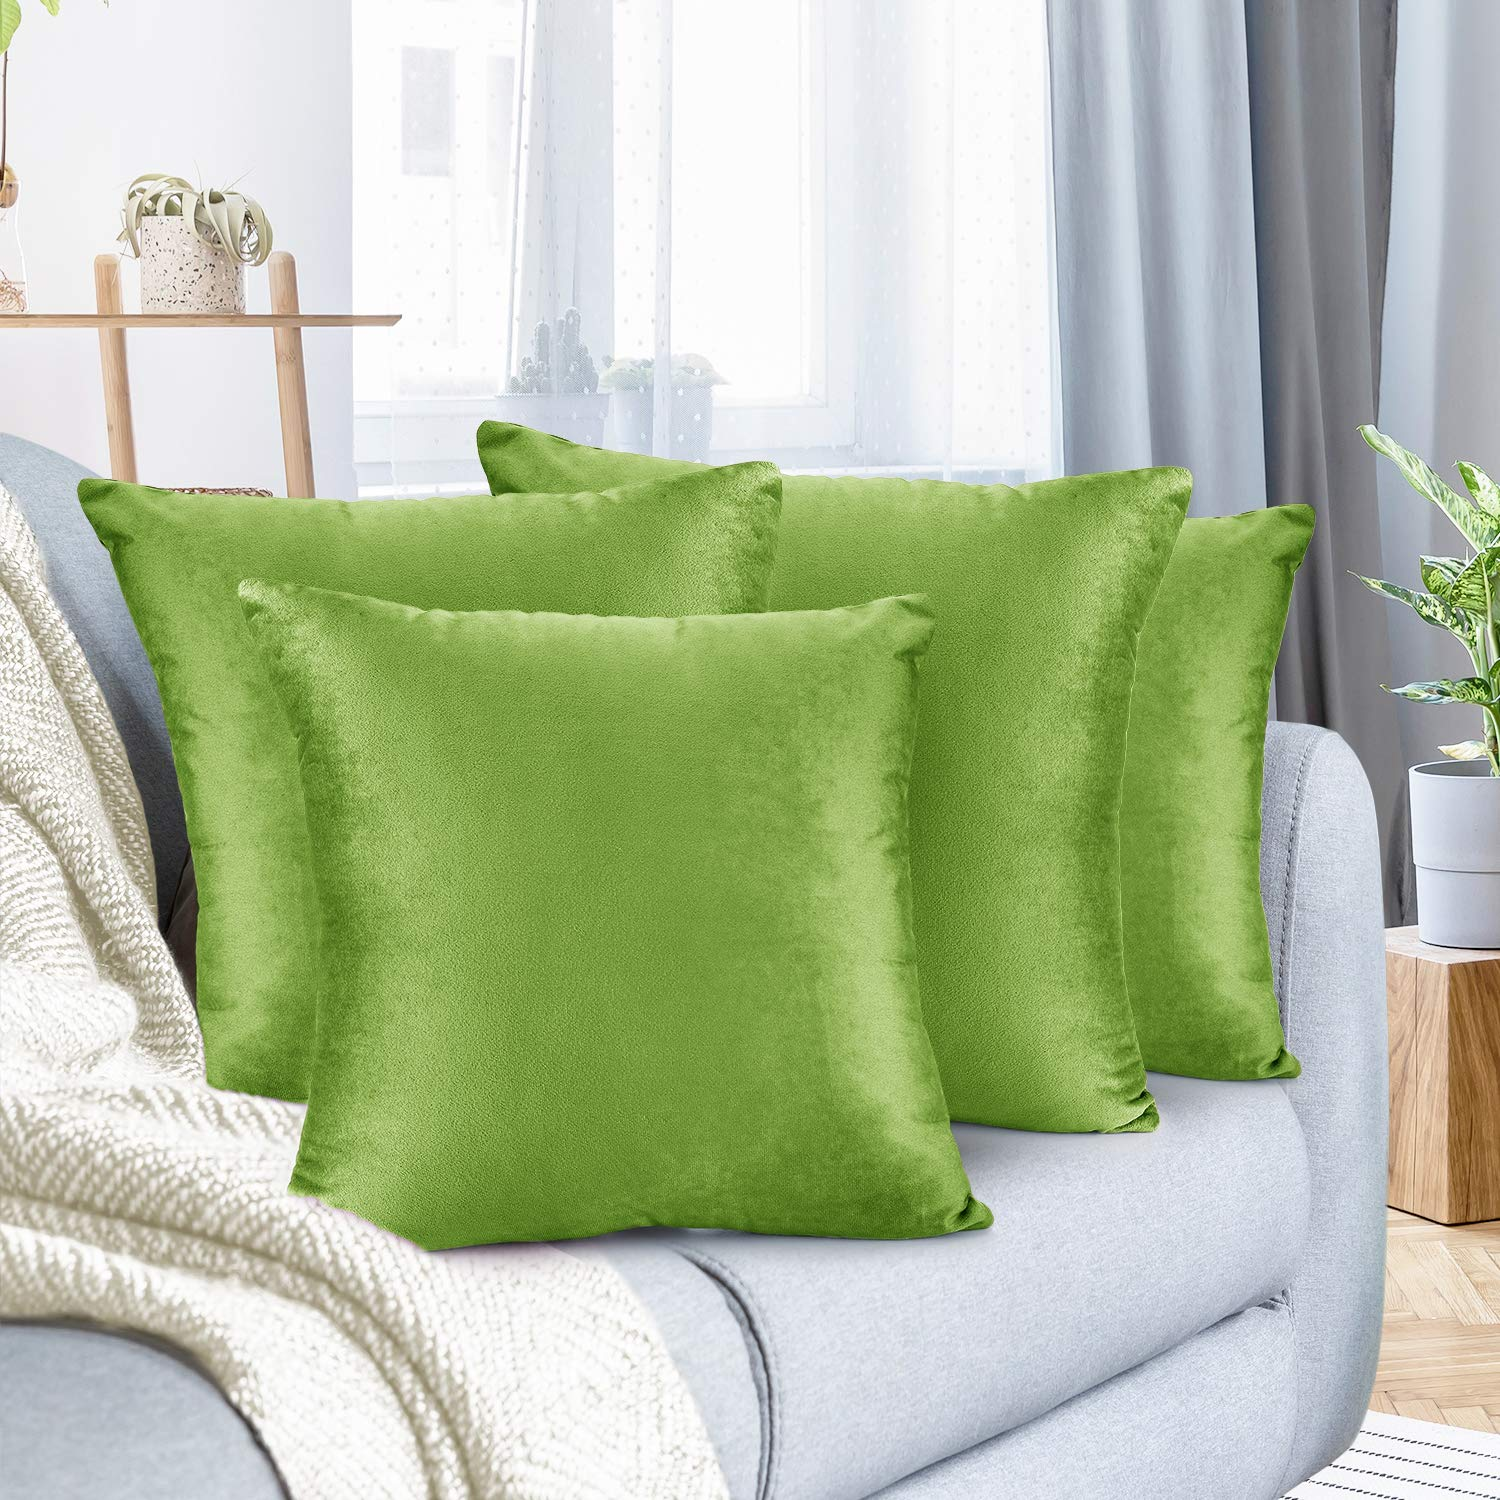 """Nestl Bedding Throw Pillow Cover 22"""" x 22"""" Soft Square Decorative Throw Pillow Covers Cozy Velvet Cushion Case for Sofa Couch Bedroom, Set of 4, Garden Green"""